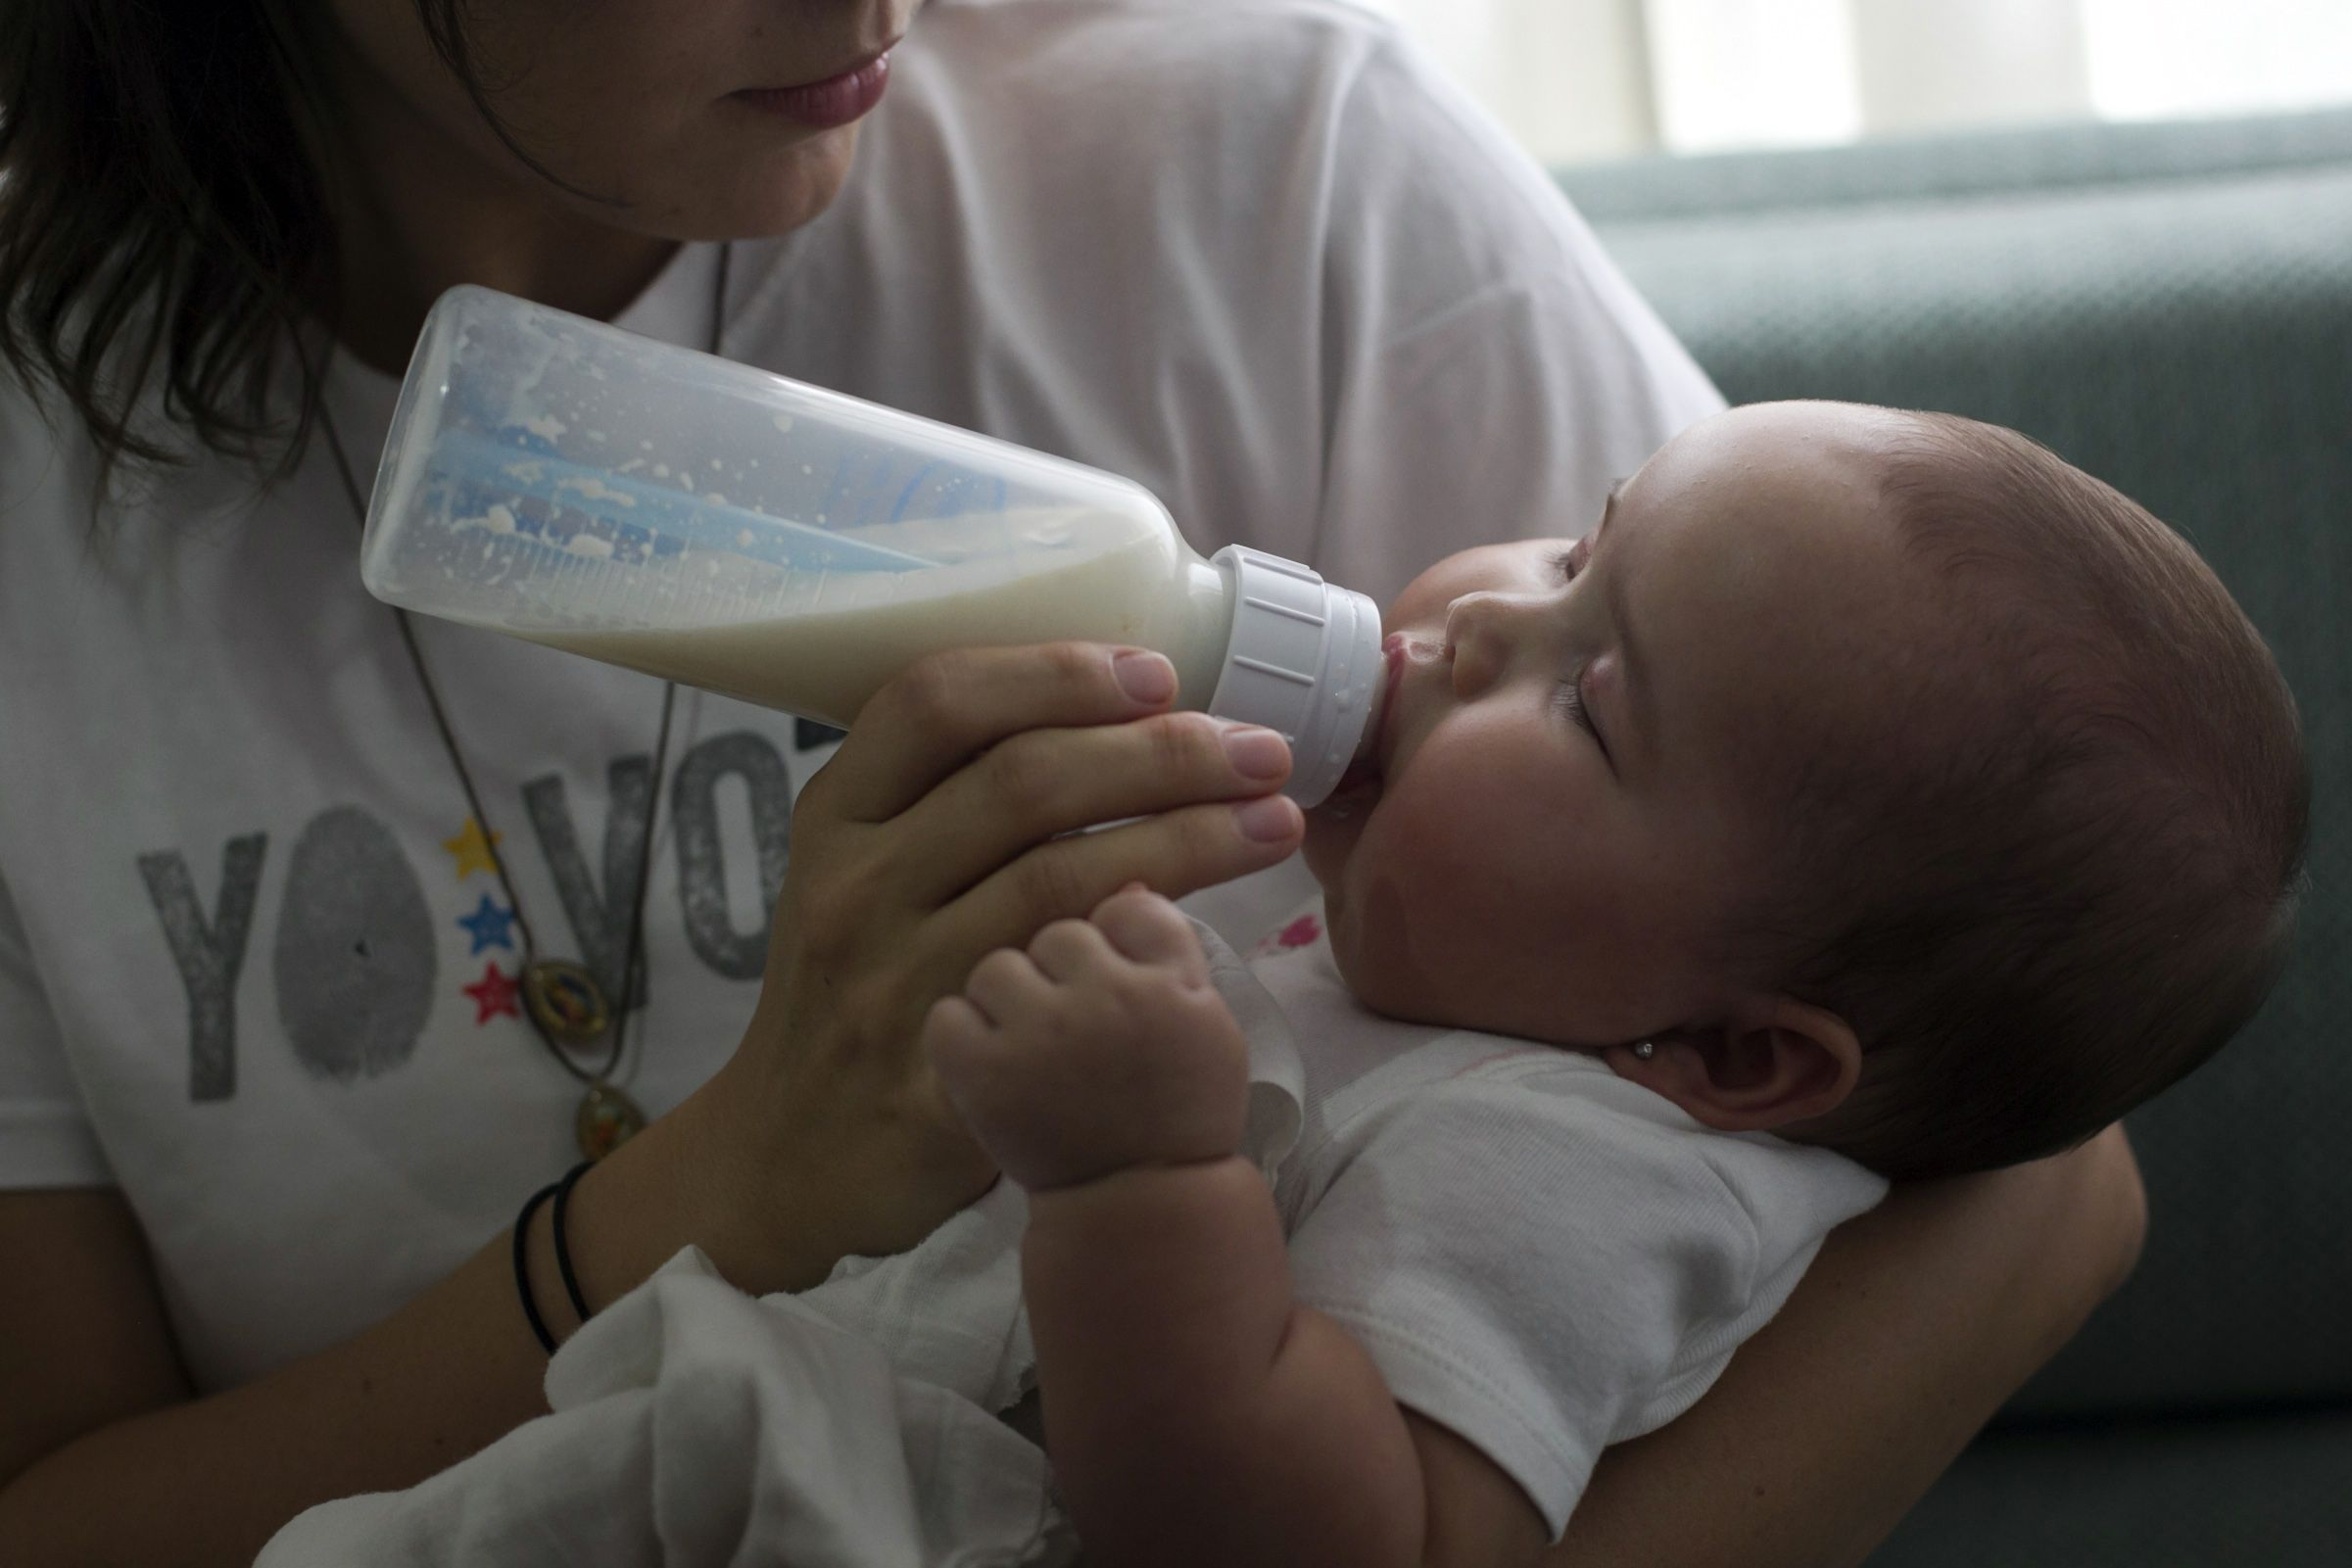 Adults Really Shouldn't Drink Human Breast Milk